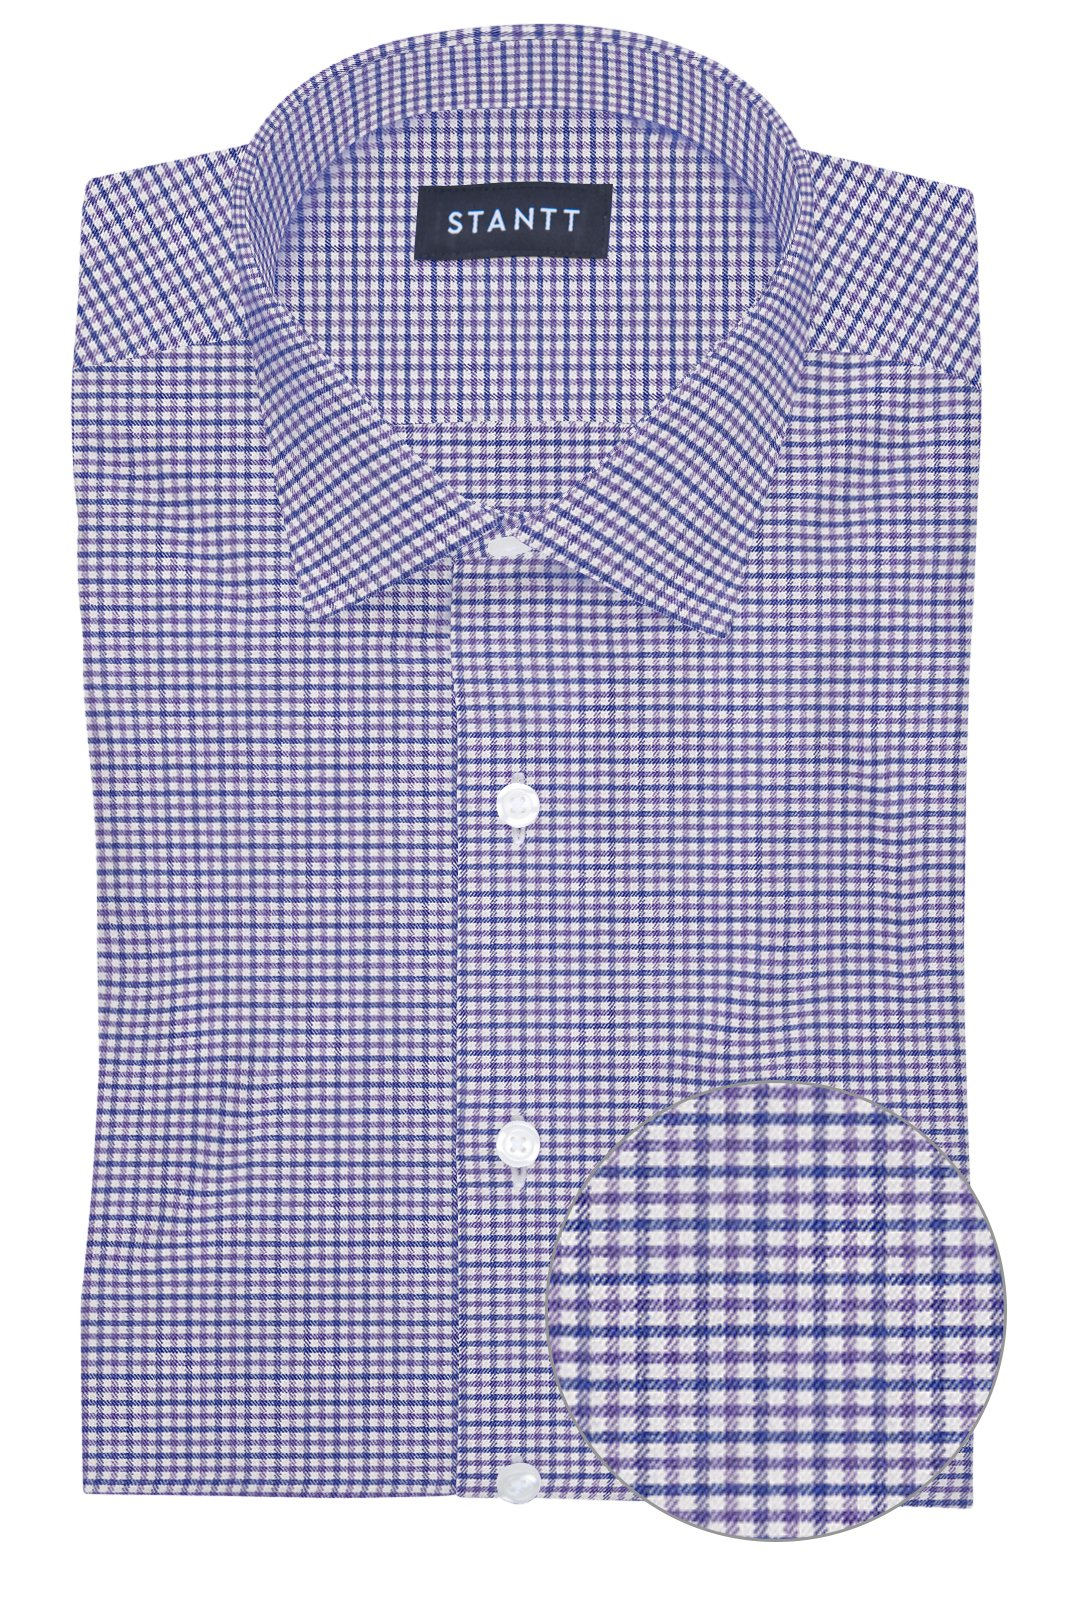 Performance Purple and Blue Mini Gingham: Modified-Spread Collar, French Cuff